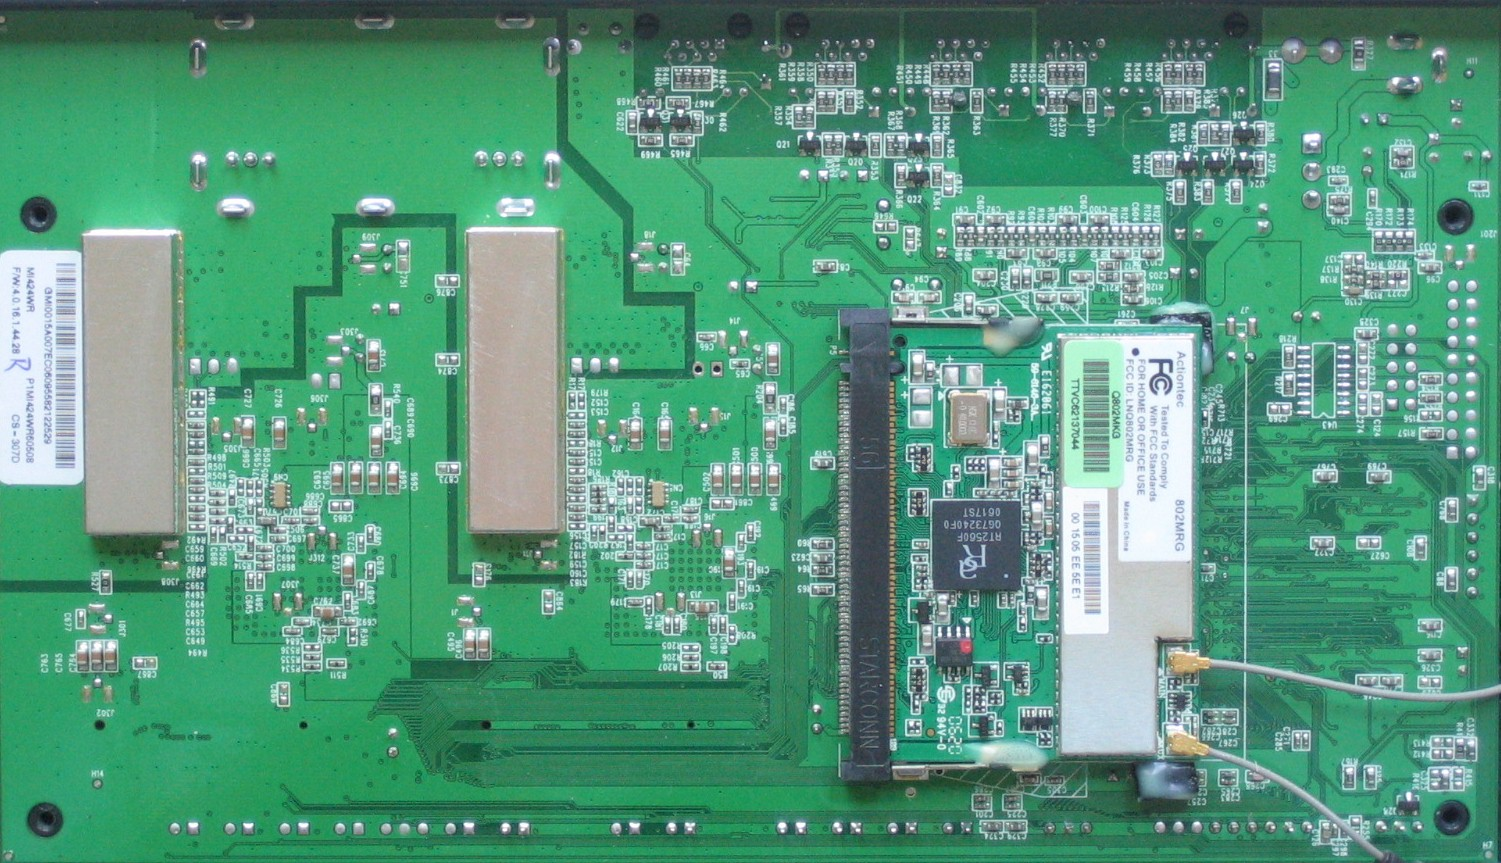 Actiontec Mi424wr Review Able Partner For Verizon Fios Wiring Diagram Board Bottom